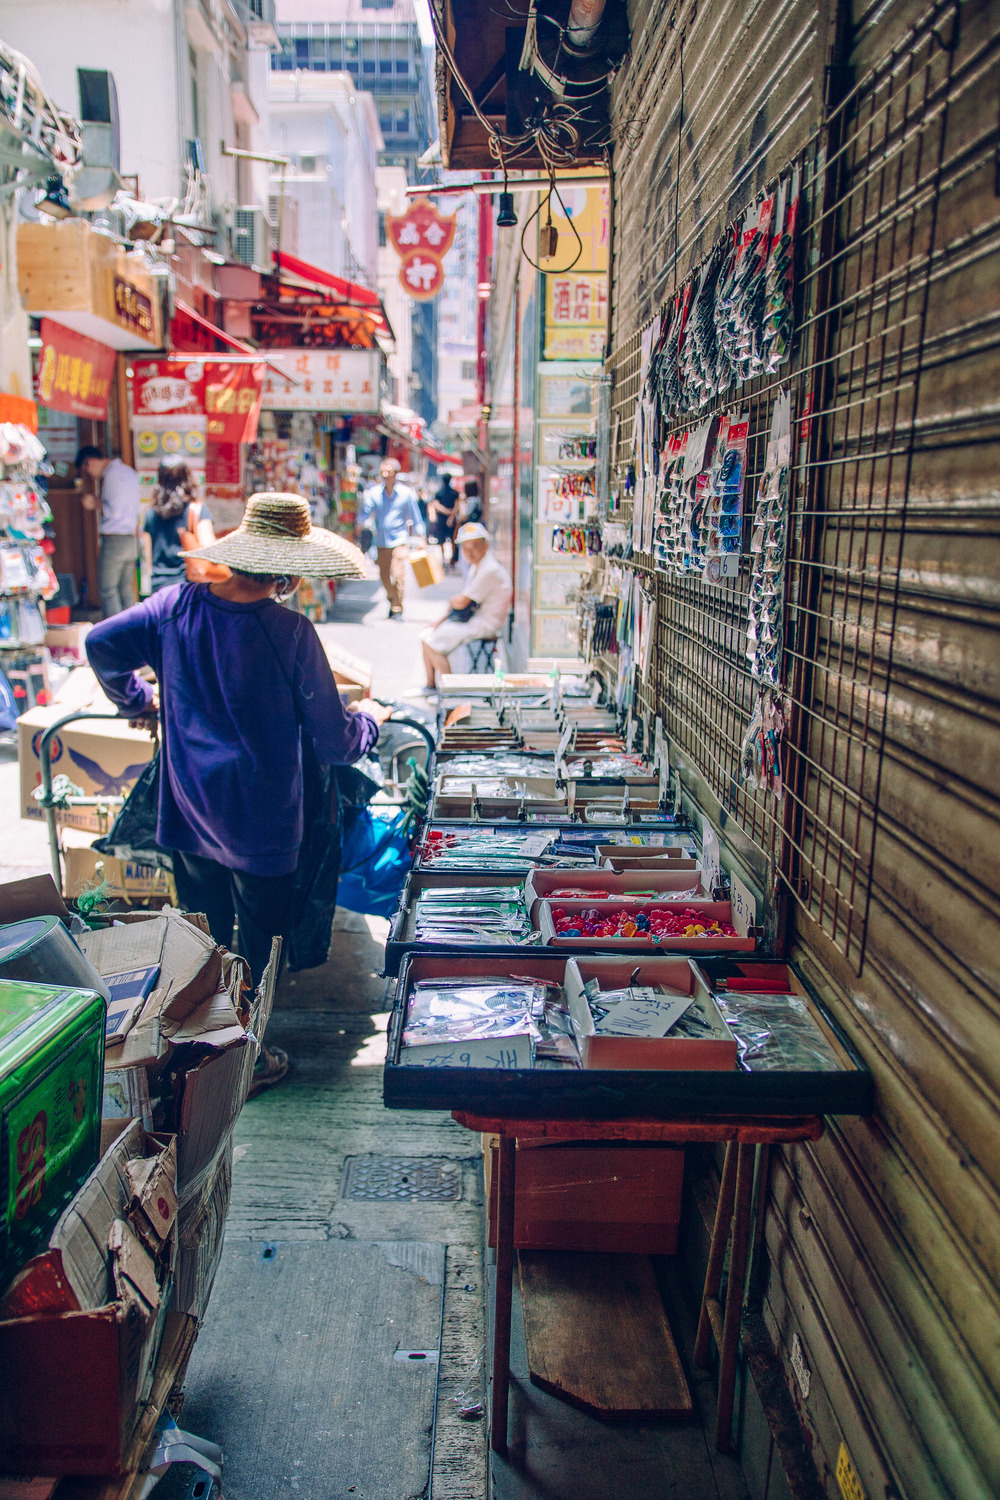 Conglomeration -  Taking a break from the hustle and bustle of Hong Kong's vibrant culture